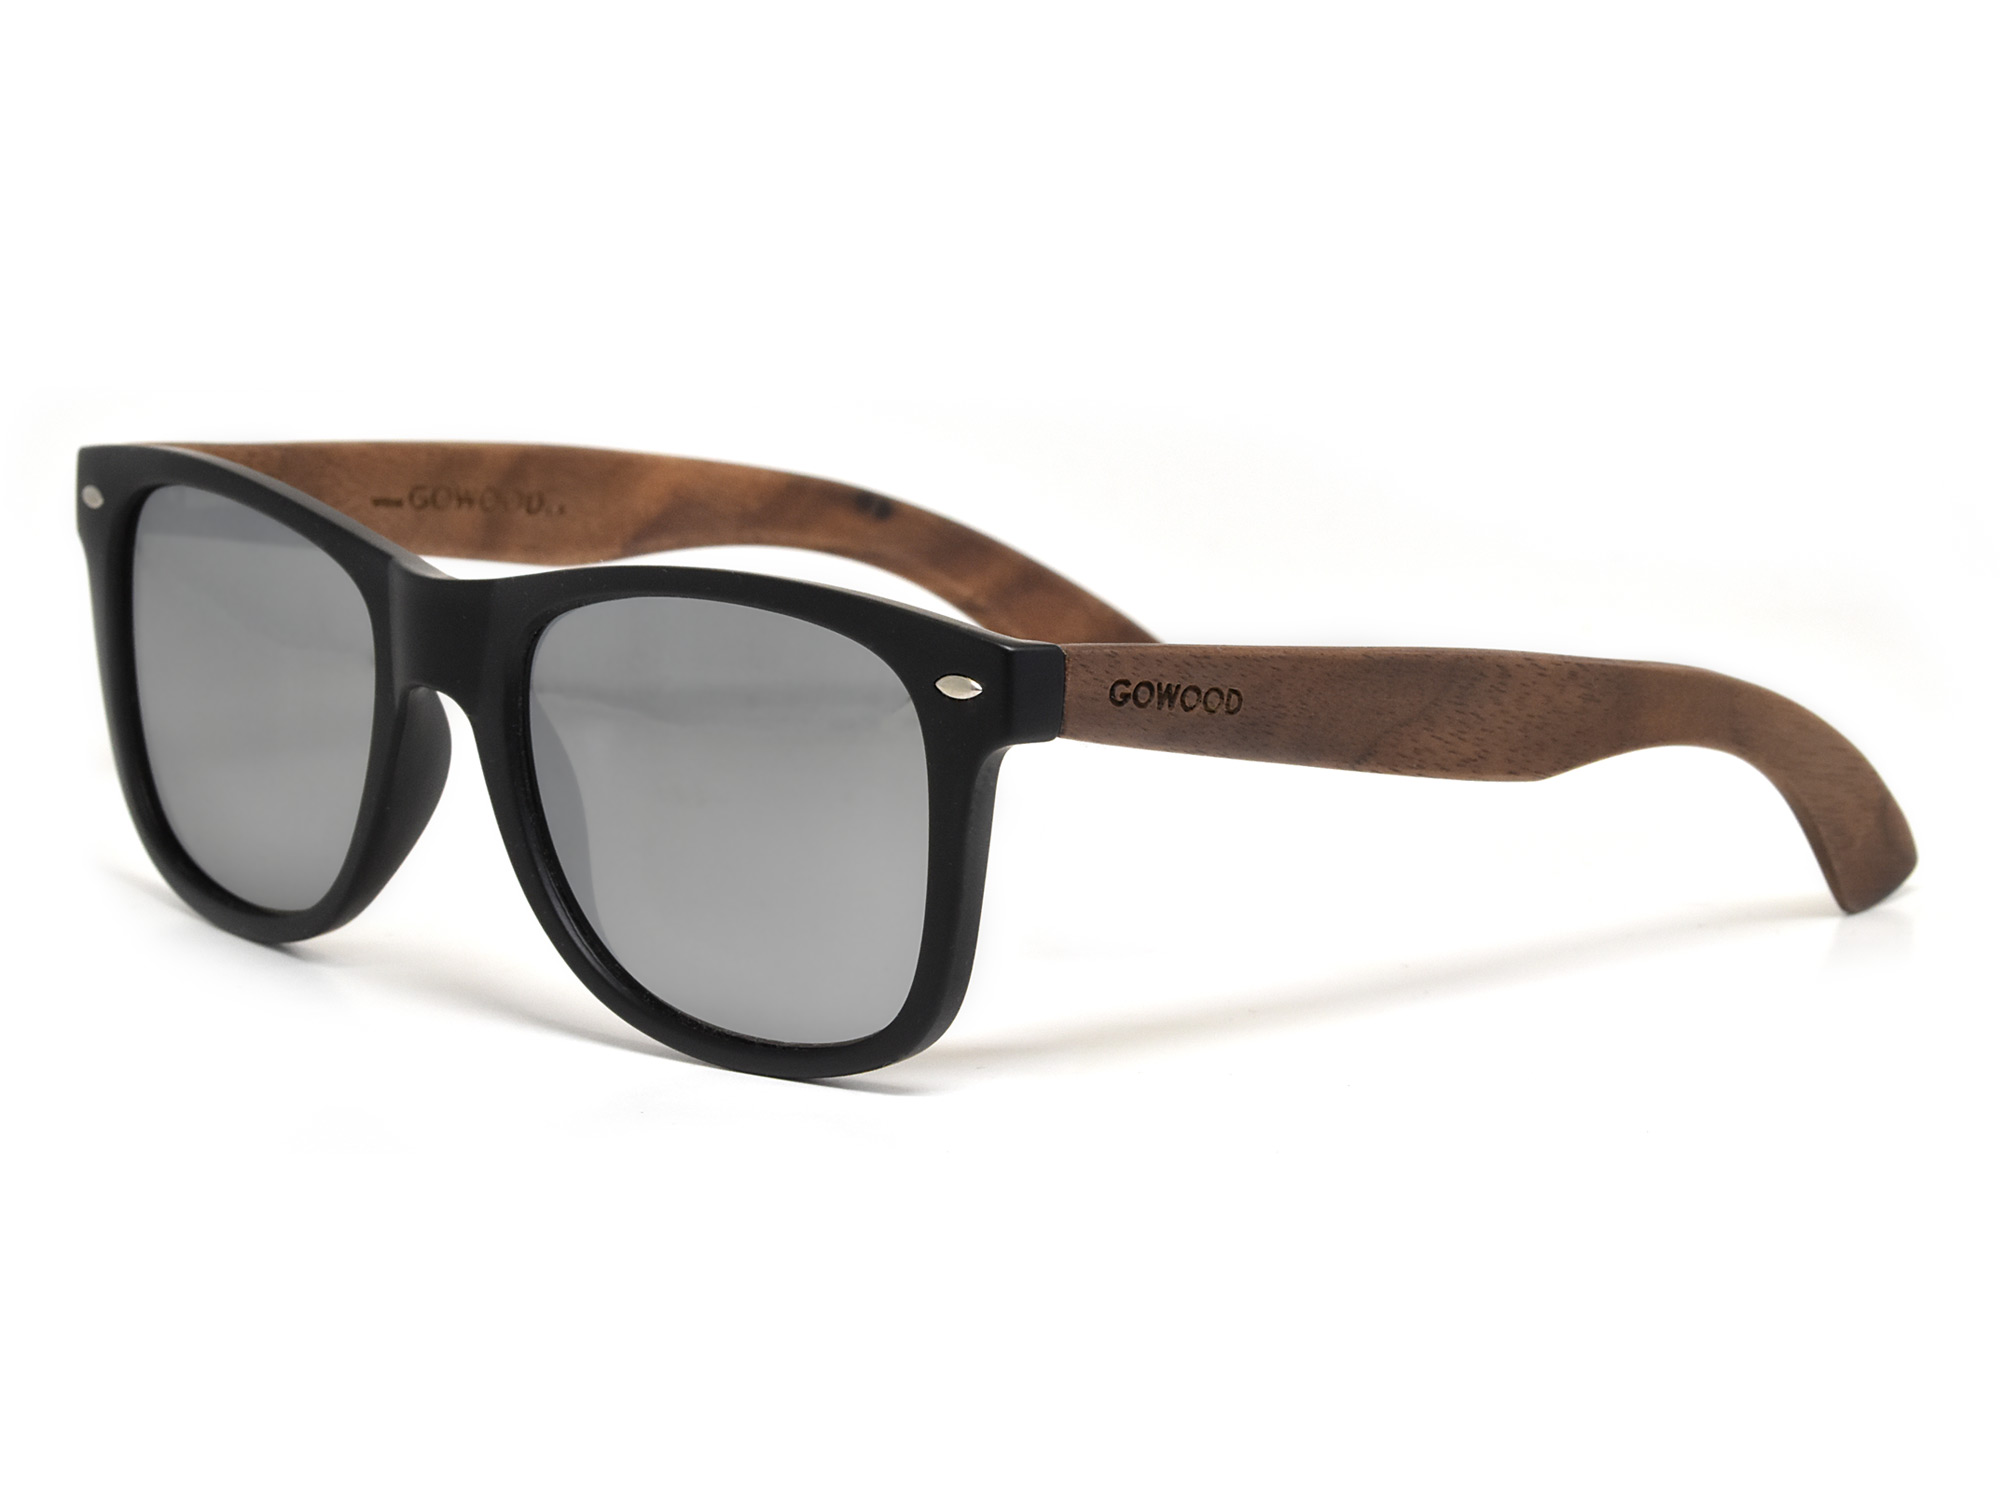 Walnut wood sunglasses with silver mirrored lenses